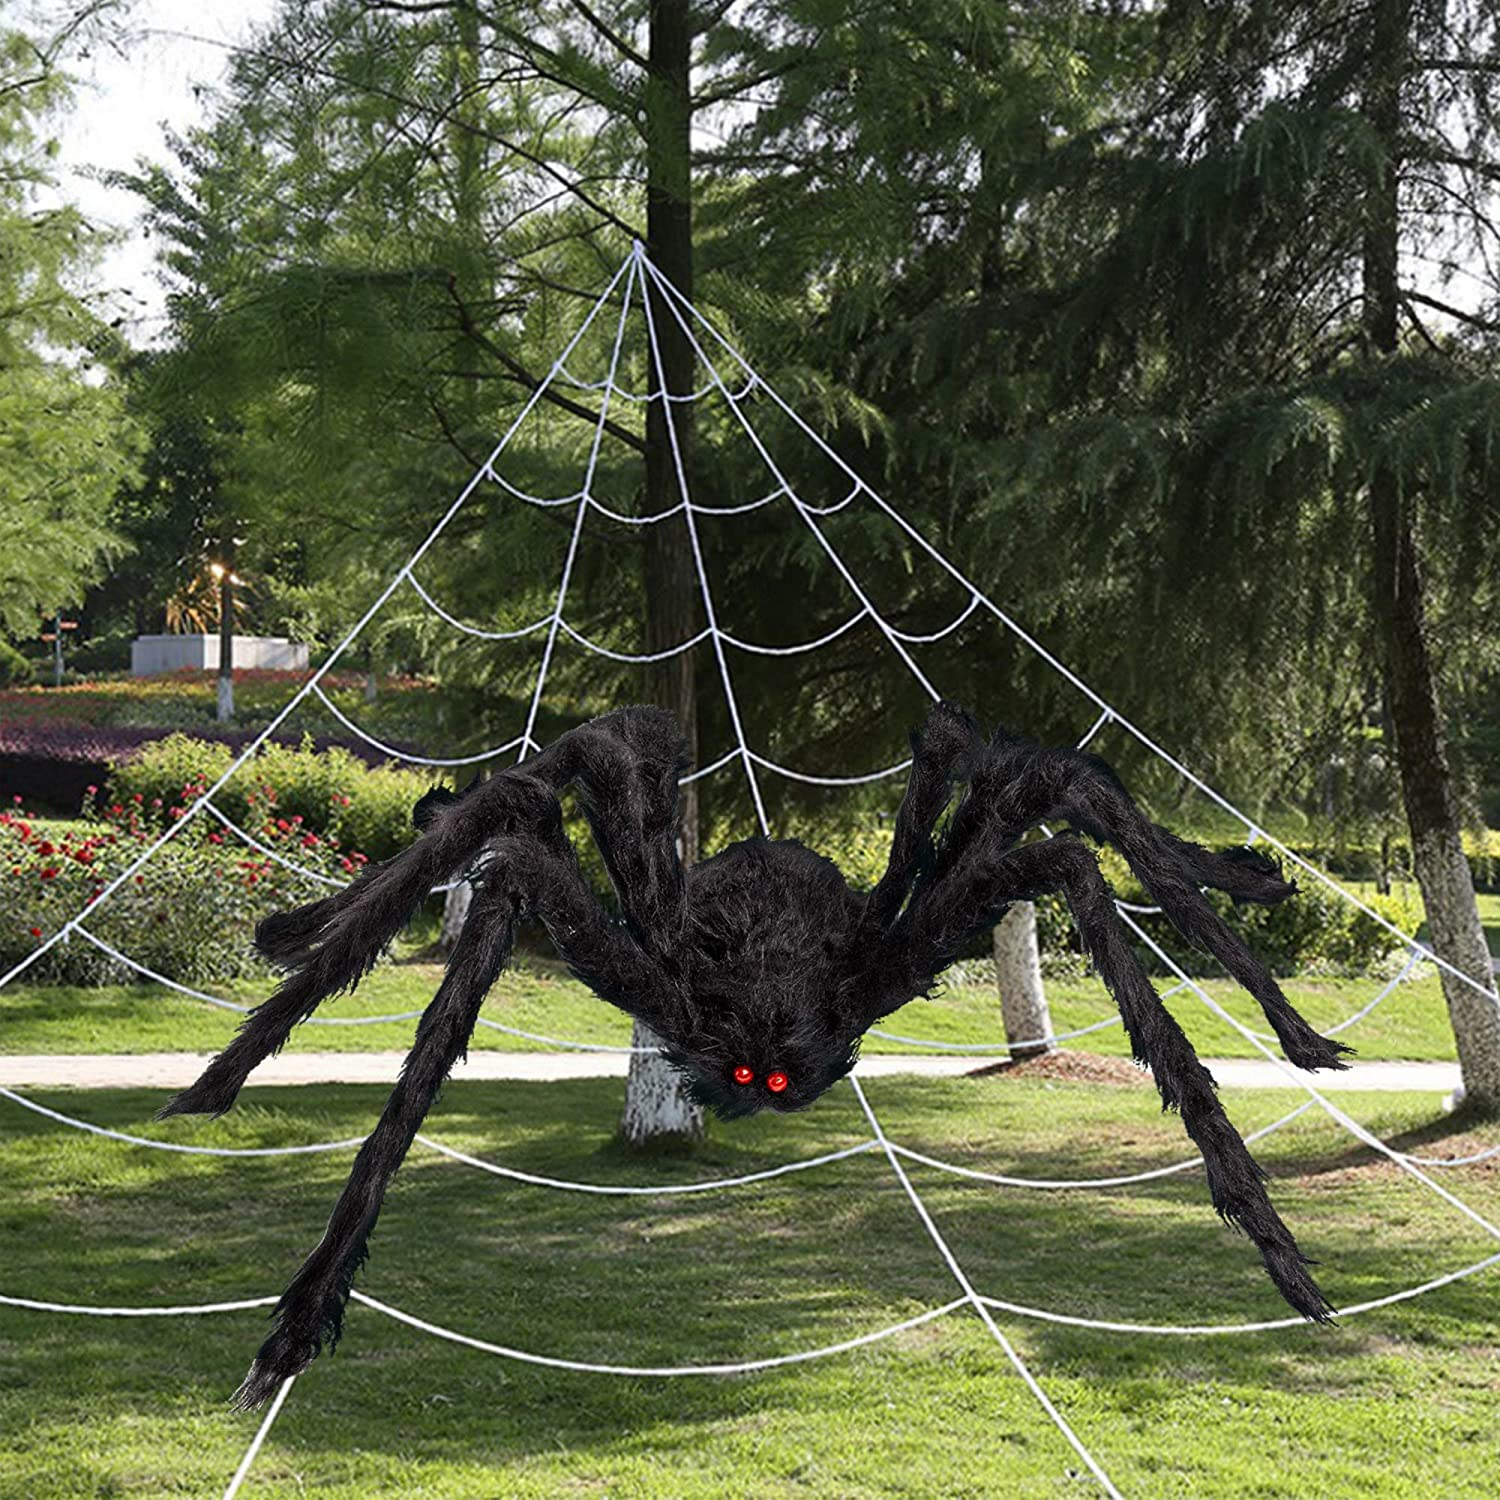 SEASONJOY 60'' Import Large-scale sale Halloween Giant Spider with 16FT Decorations Spid